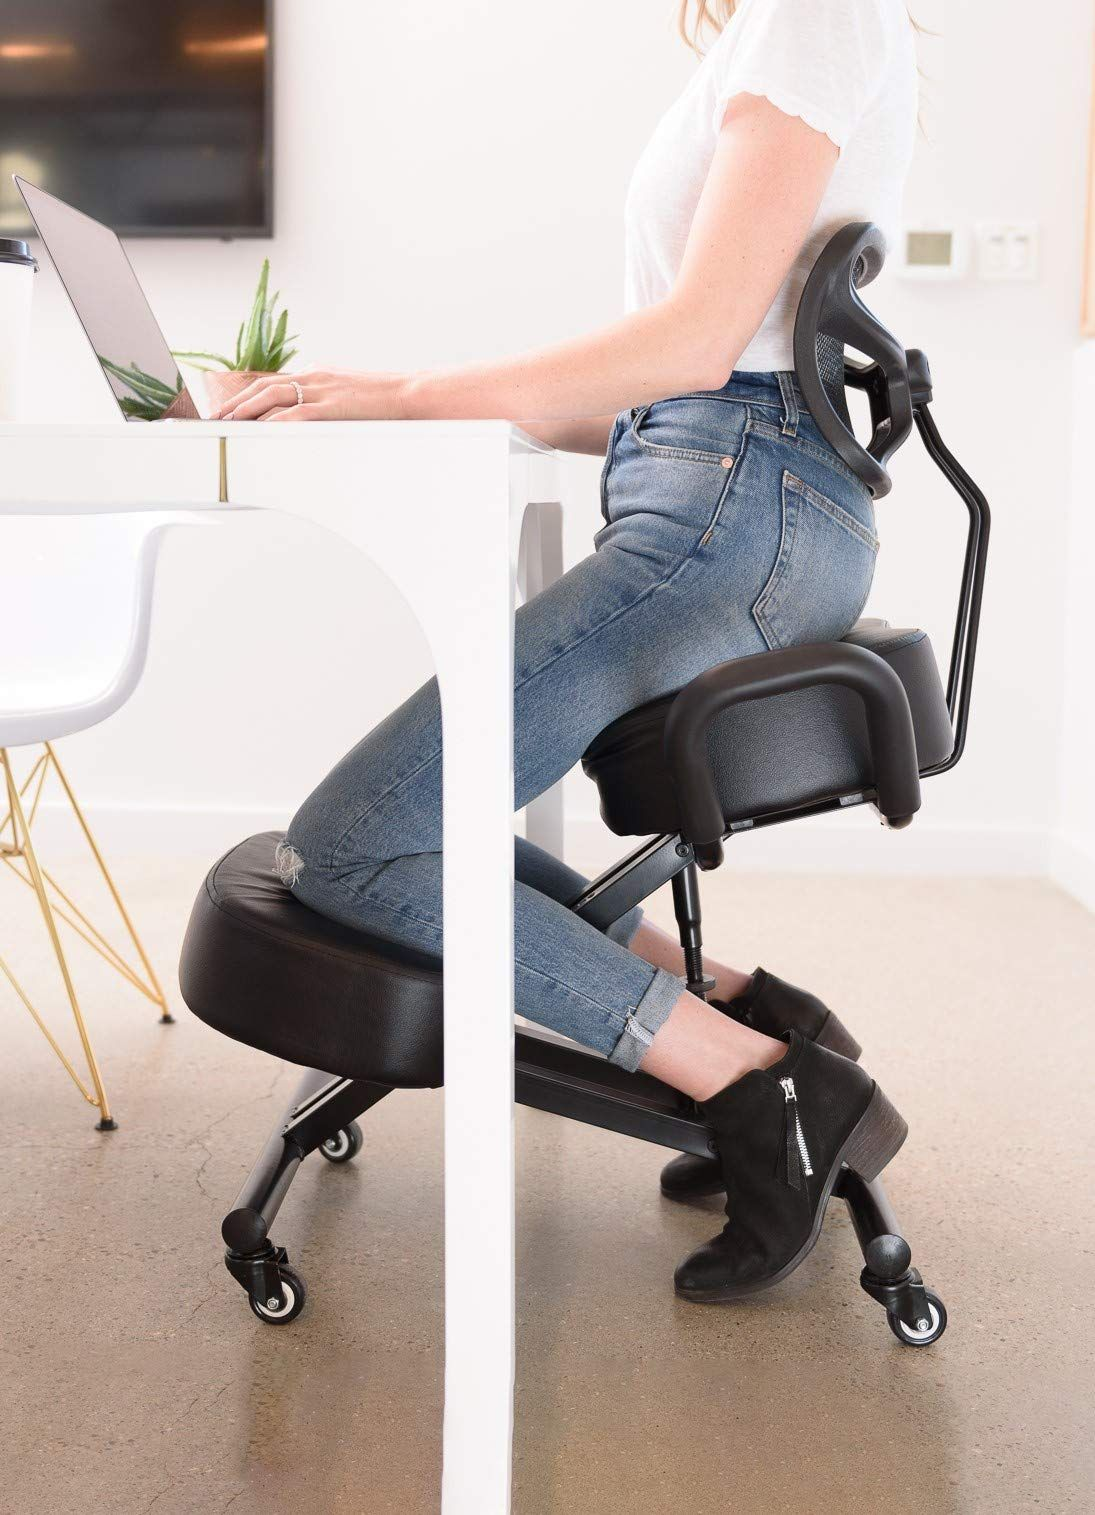 Sleekform Ergonomic Kneeling Chair Posture Correction Kneel Stool Orthopedic Spine Support For Ergonomic Kneeling Chair Kneeling Chair Office Chair Cushion